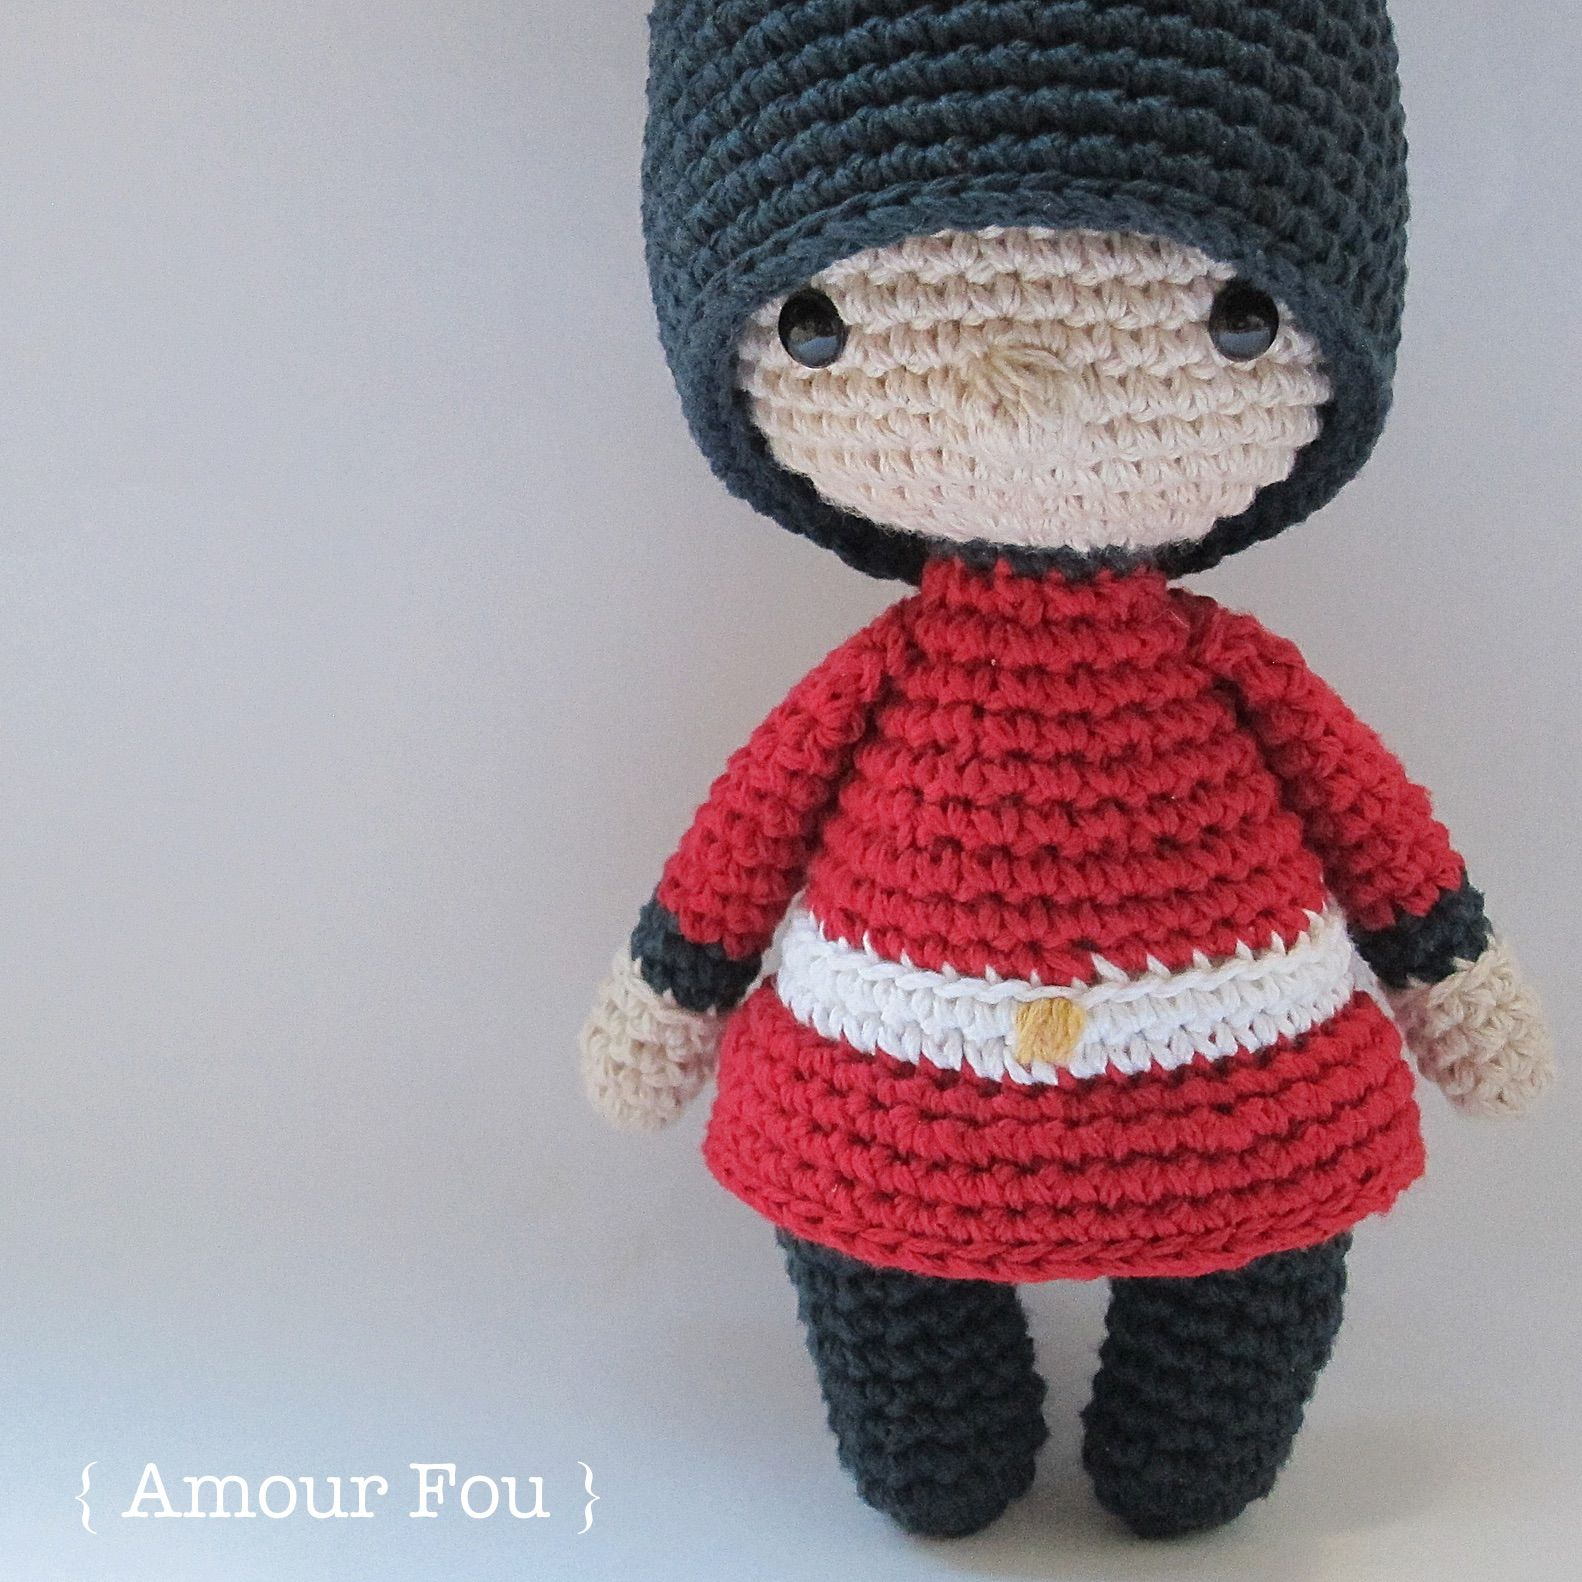 Jack the royal guard crochet pattern by amour fou crochet jack the royal guard crochet pattern by amour fou bankloansurffo Images